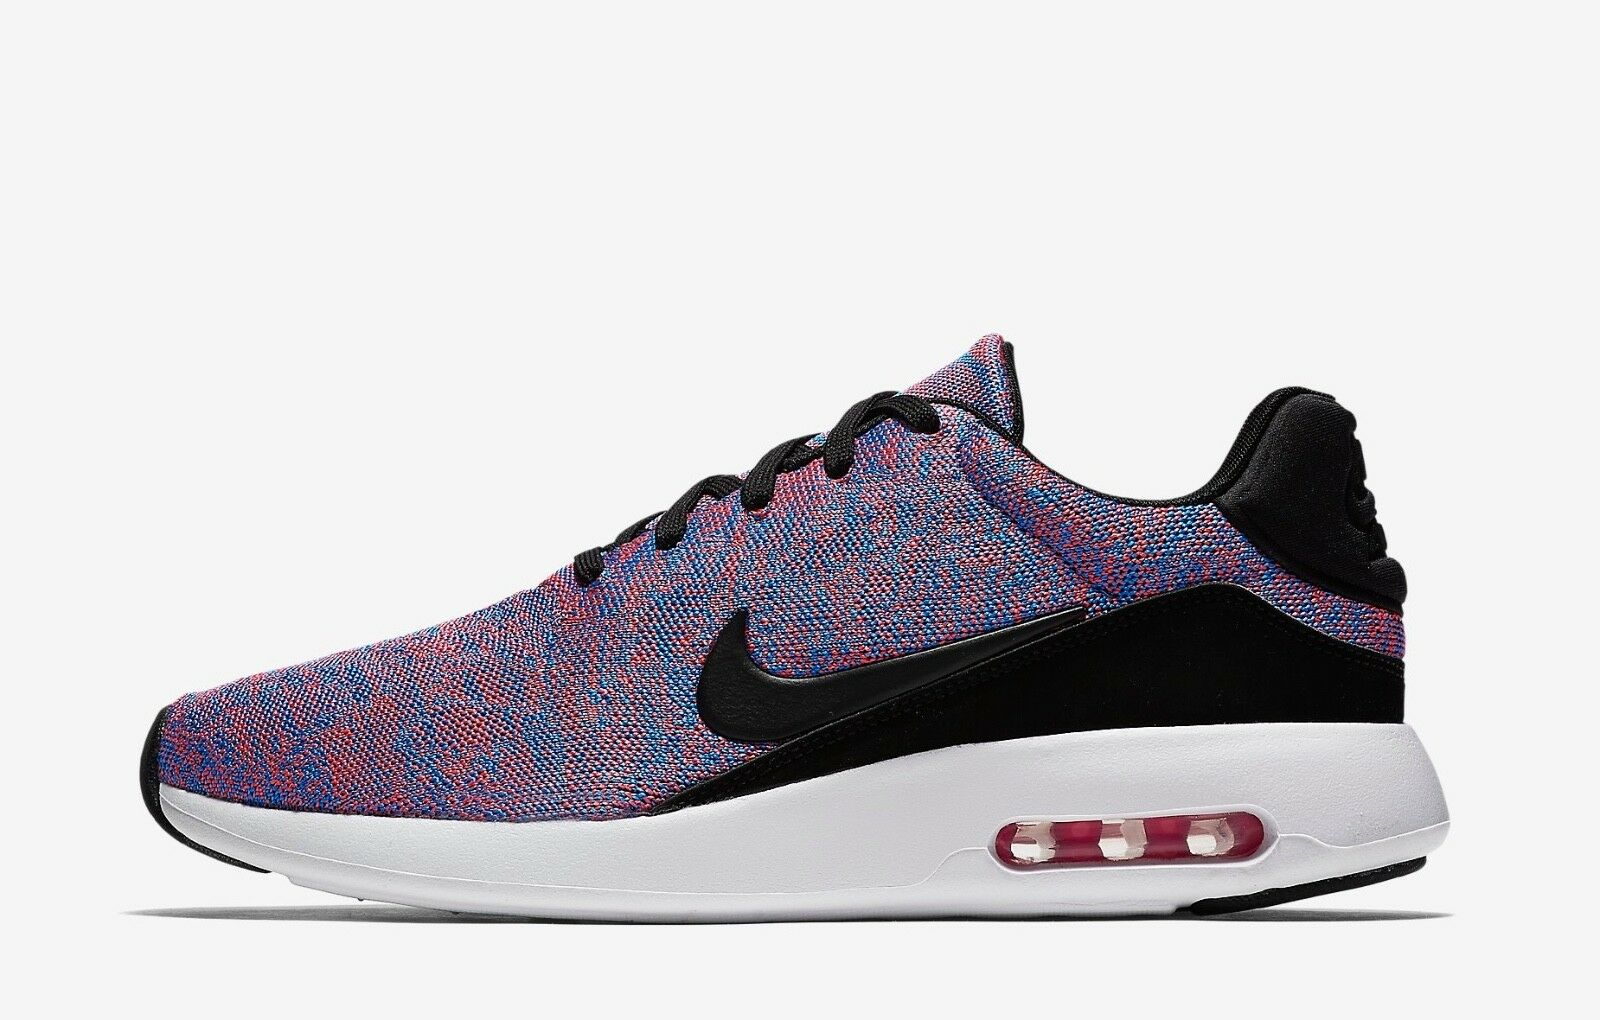 Nike Hommes Air Max Modern Flyknit Trainers Chaussures